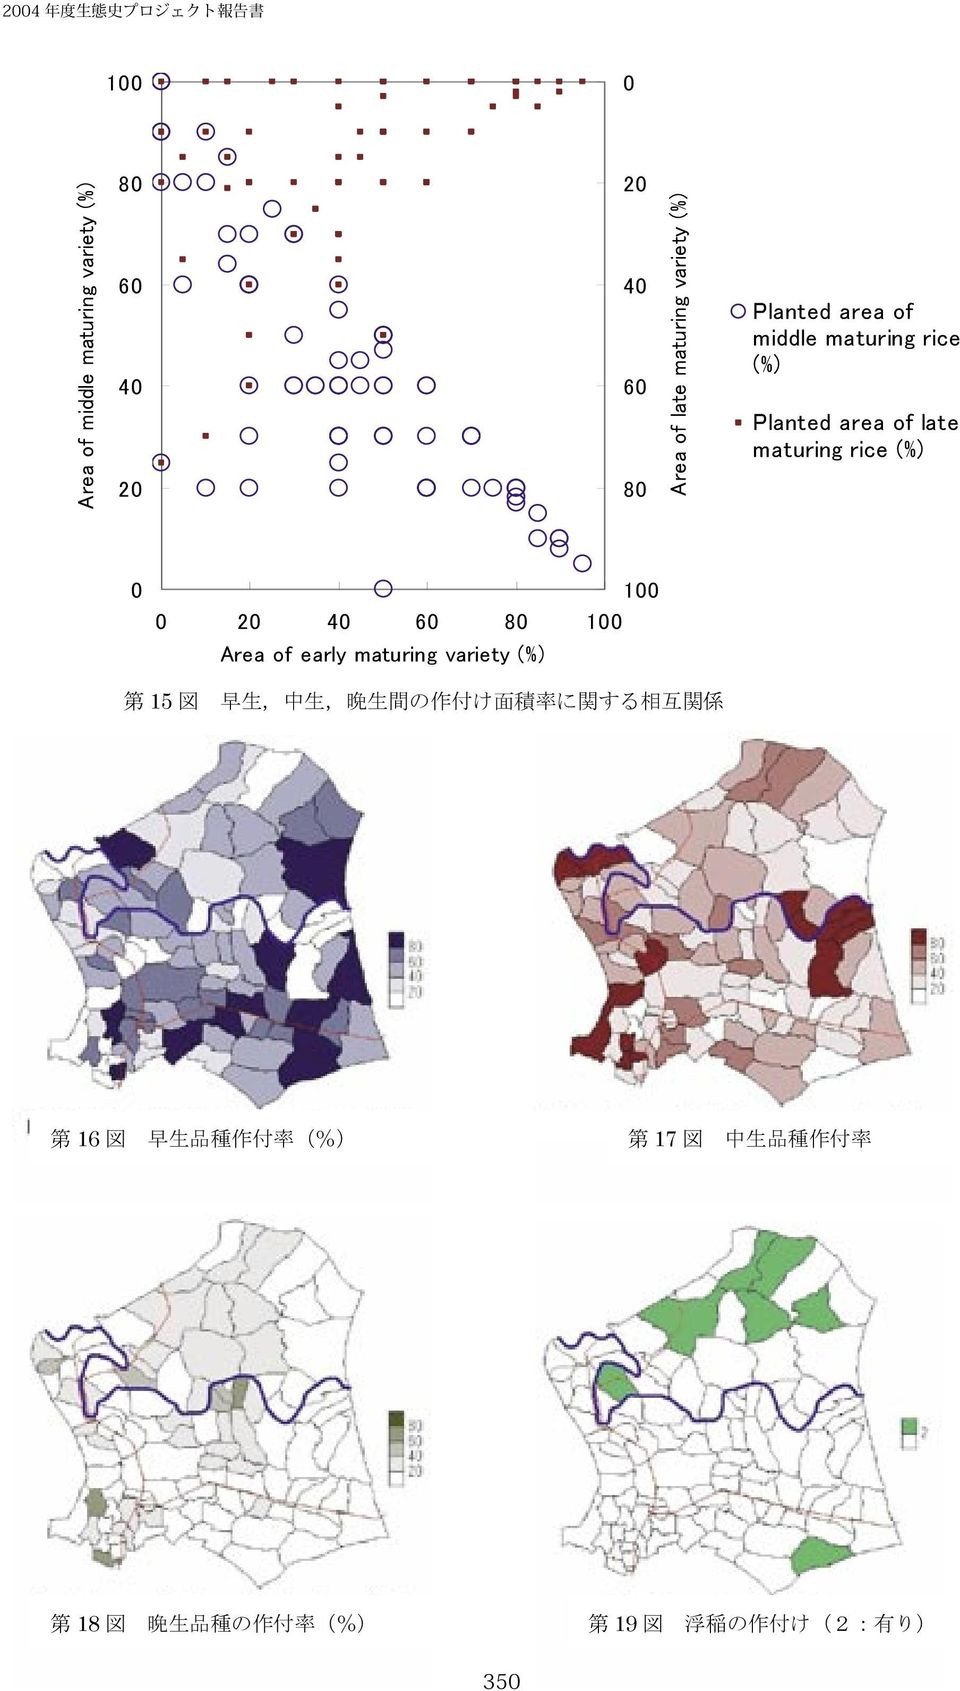 Area of early maturing variety (%) 第 15 図 早 生, 中 生, 晩 生 間 の 作 付 け 面 積 率 に 関 する 相 互 関 係 第 16